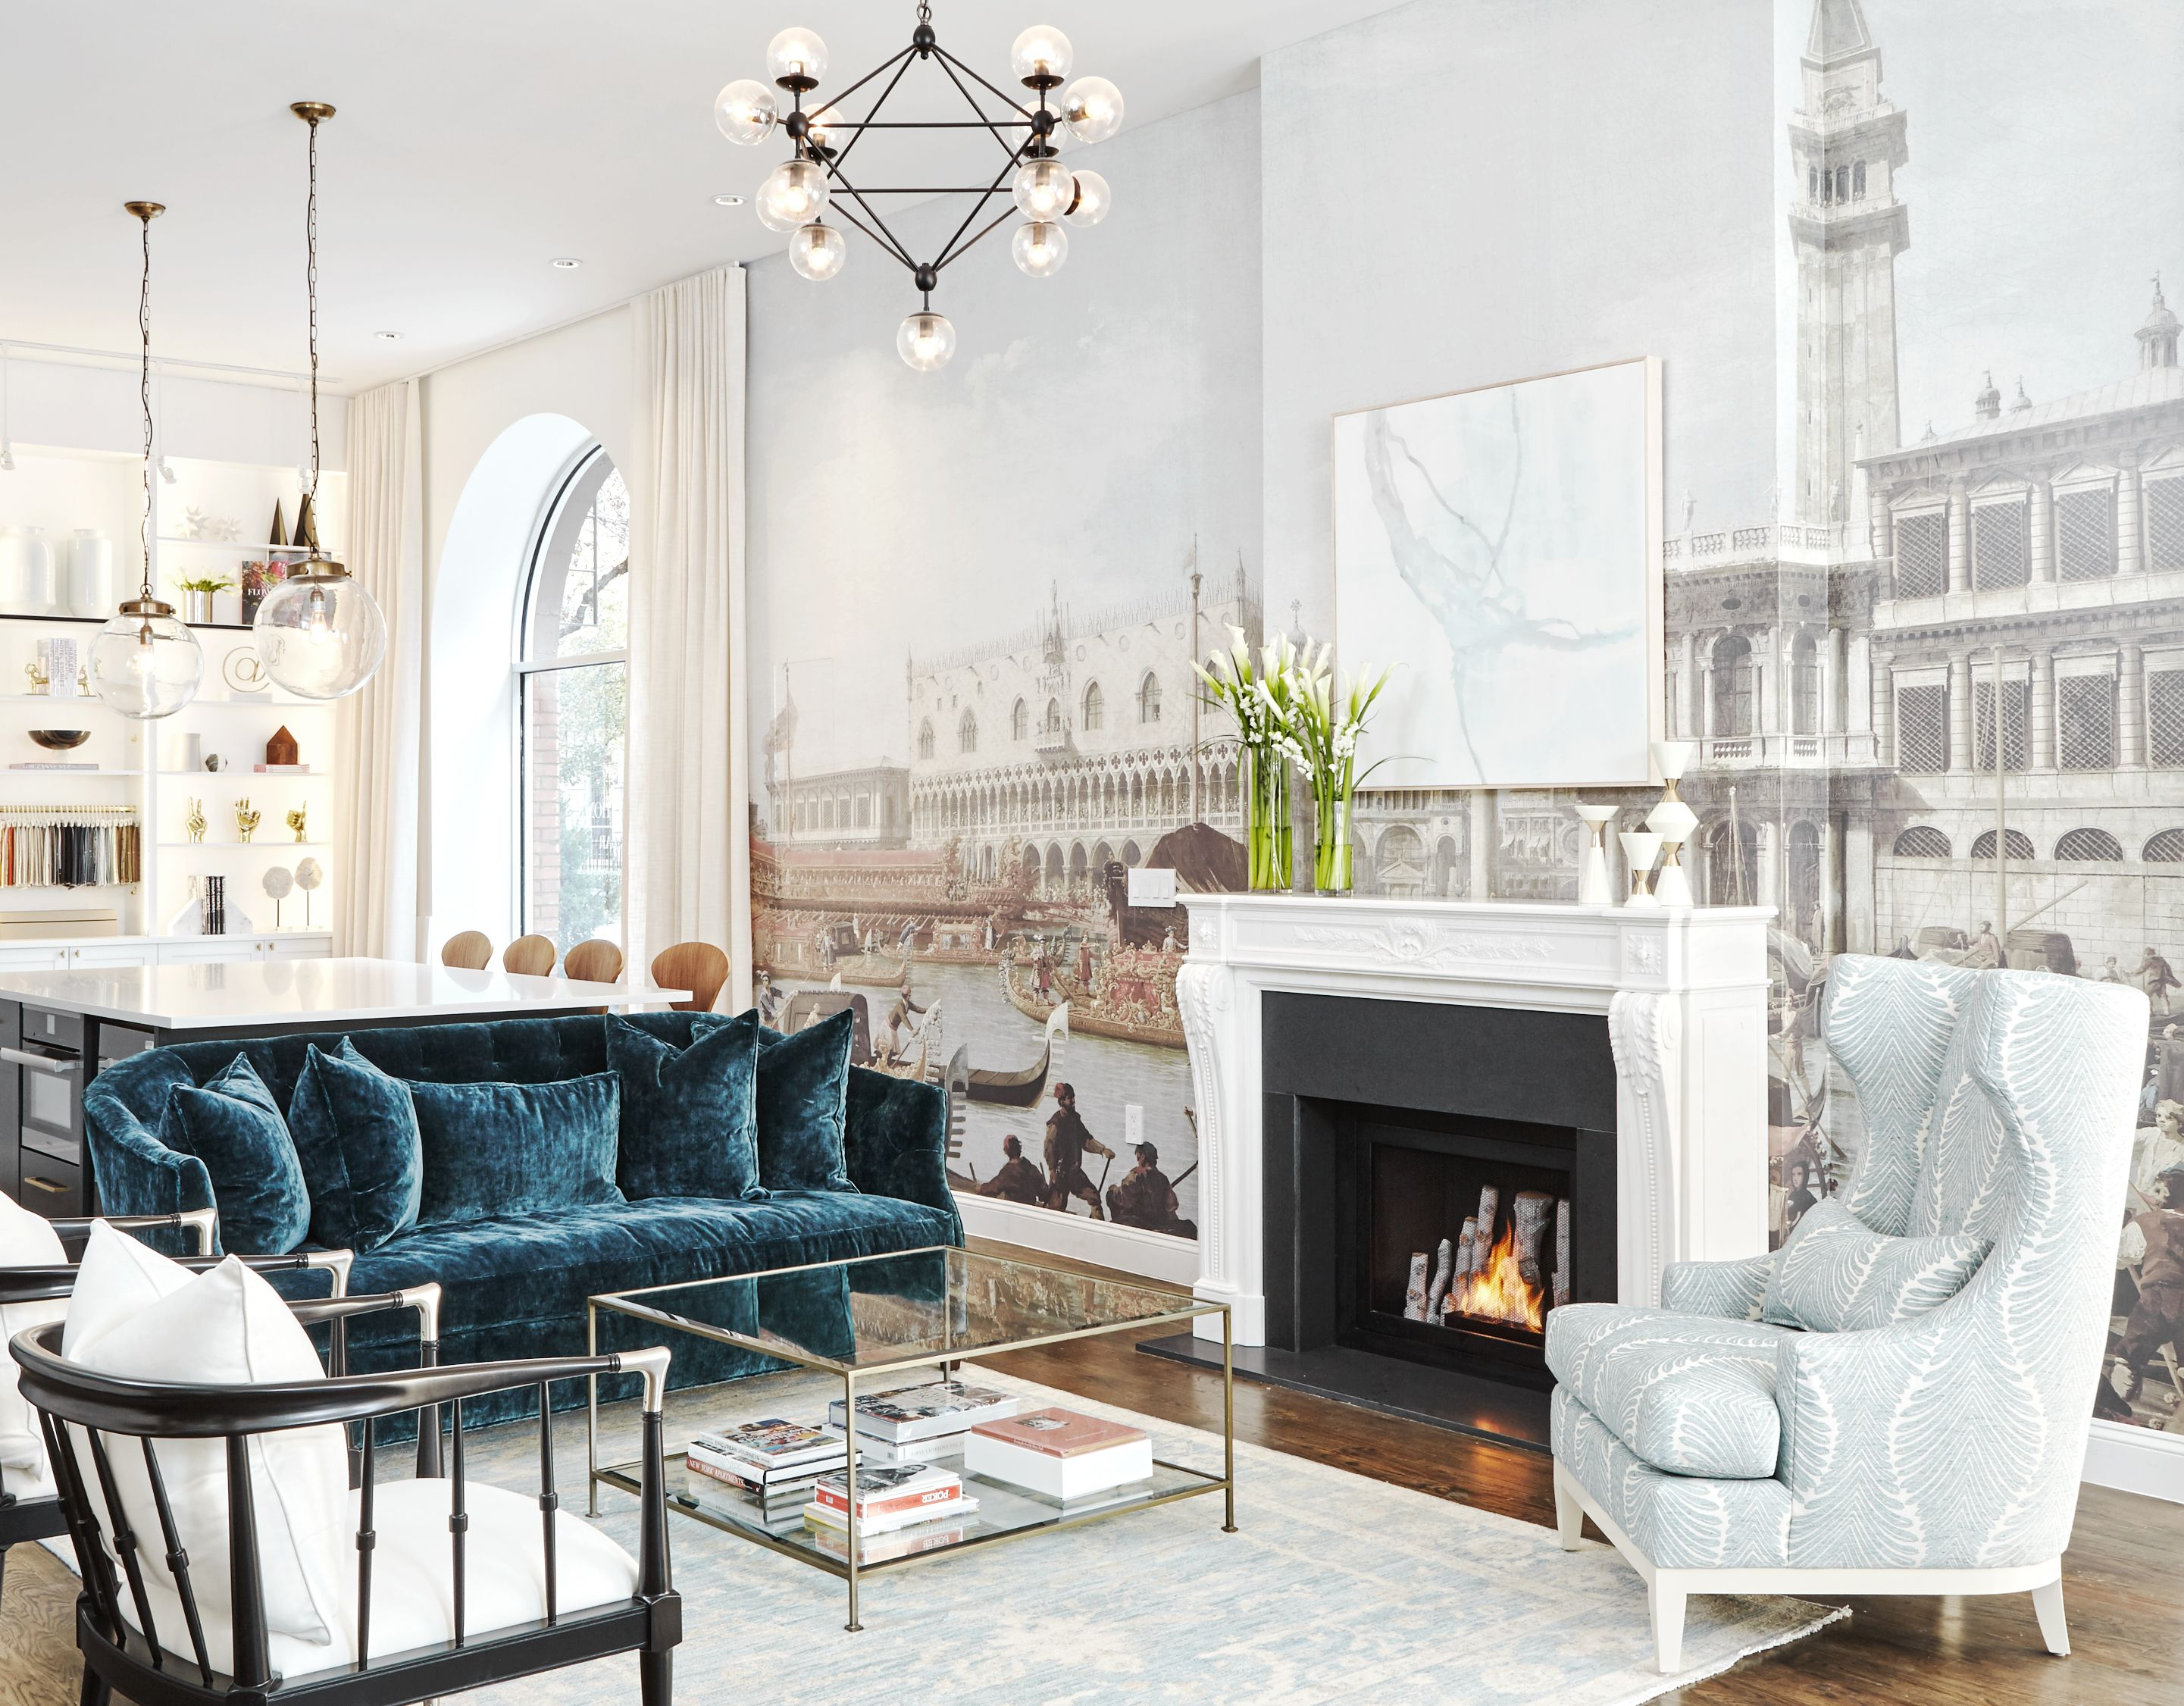 Stunning Design By Kathy Kuo Home Featured In Architectural Digest Magazine Ventless Fireplace Tall Bla Modern Classic Furniture Home Coastal Living Room